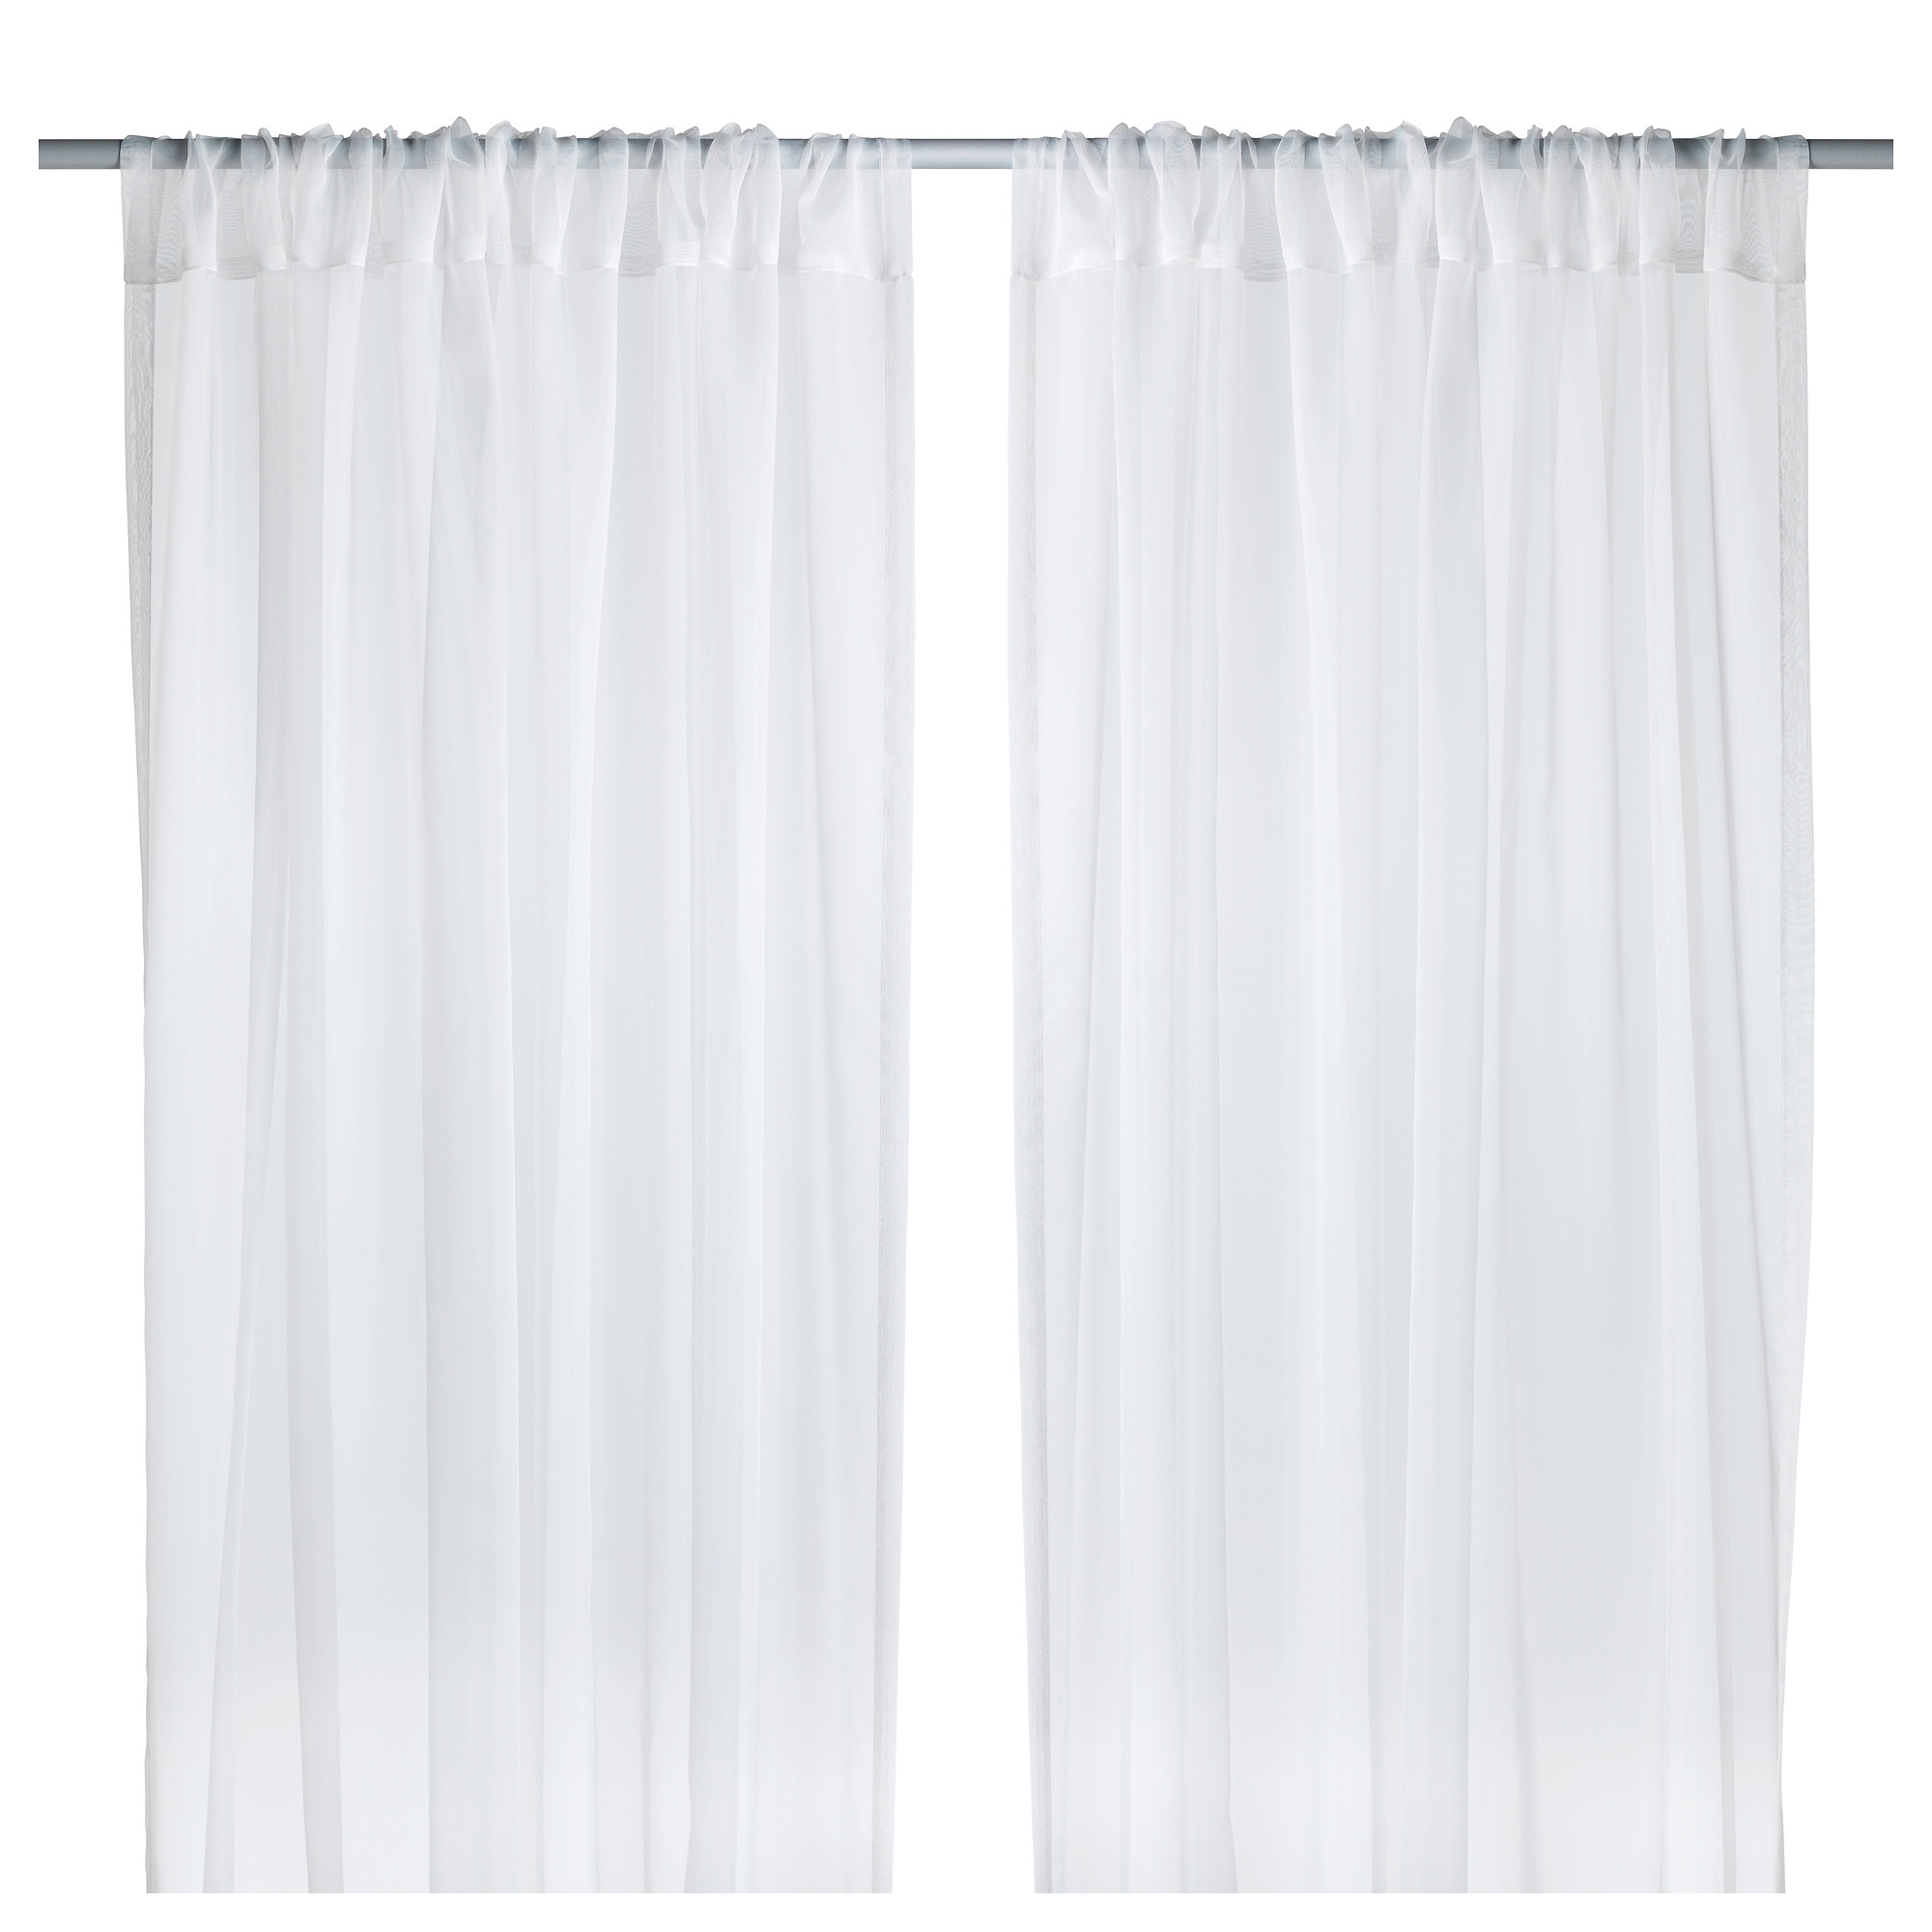 Teresia Sheer Curtains 1 Pair Ikea With Curtains Sheers (Image 22 of 25)